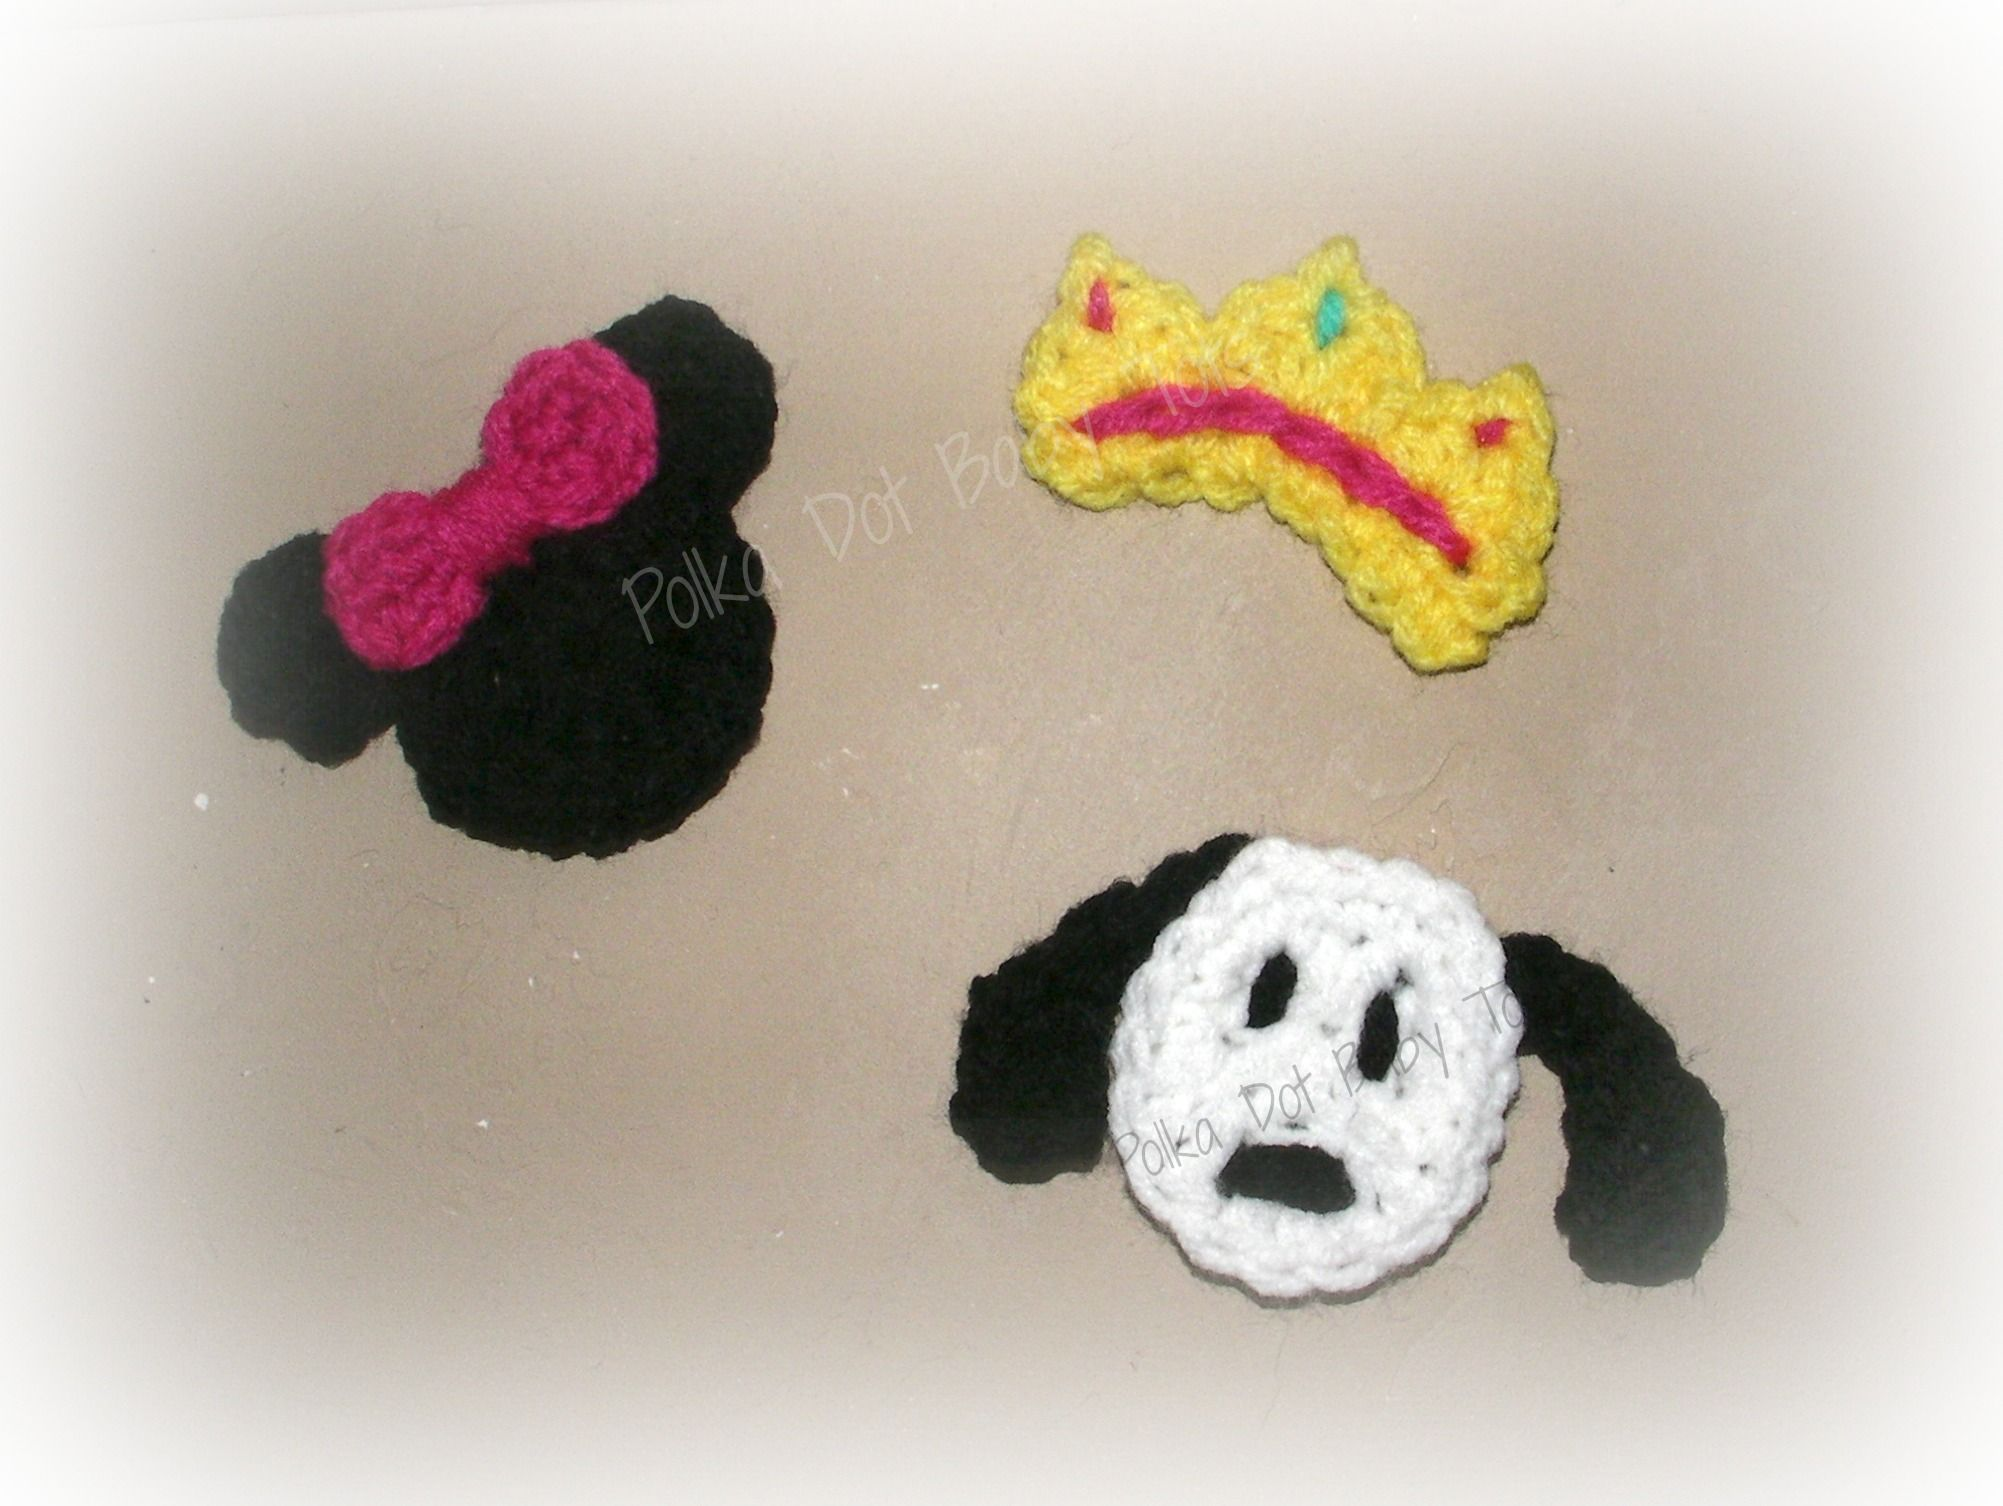 Crochet mini appliques for hair clips (inspired by Minnie, a puppy, and a princess crown)